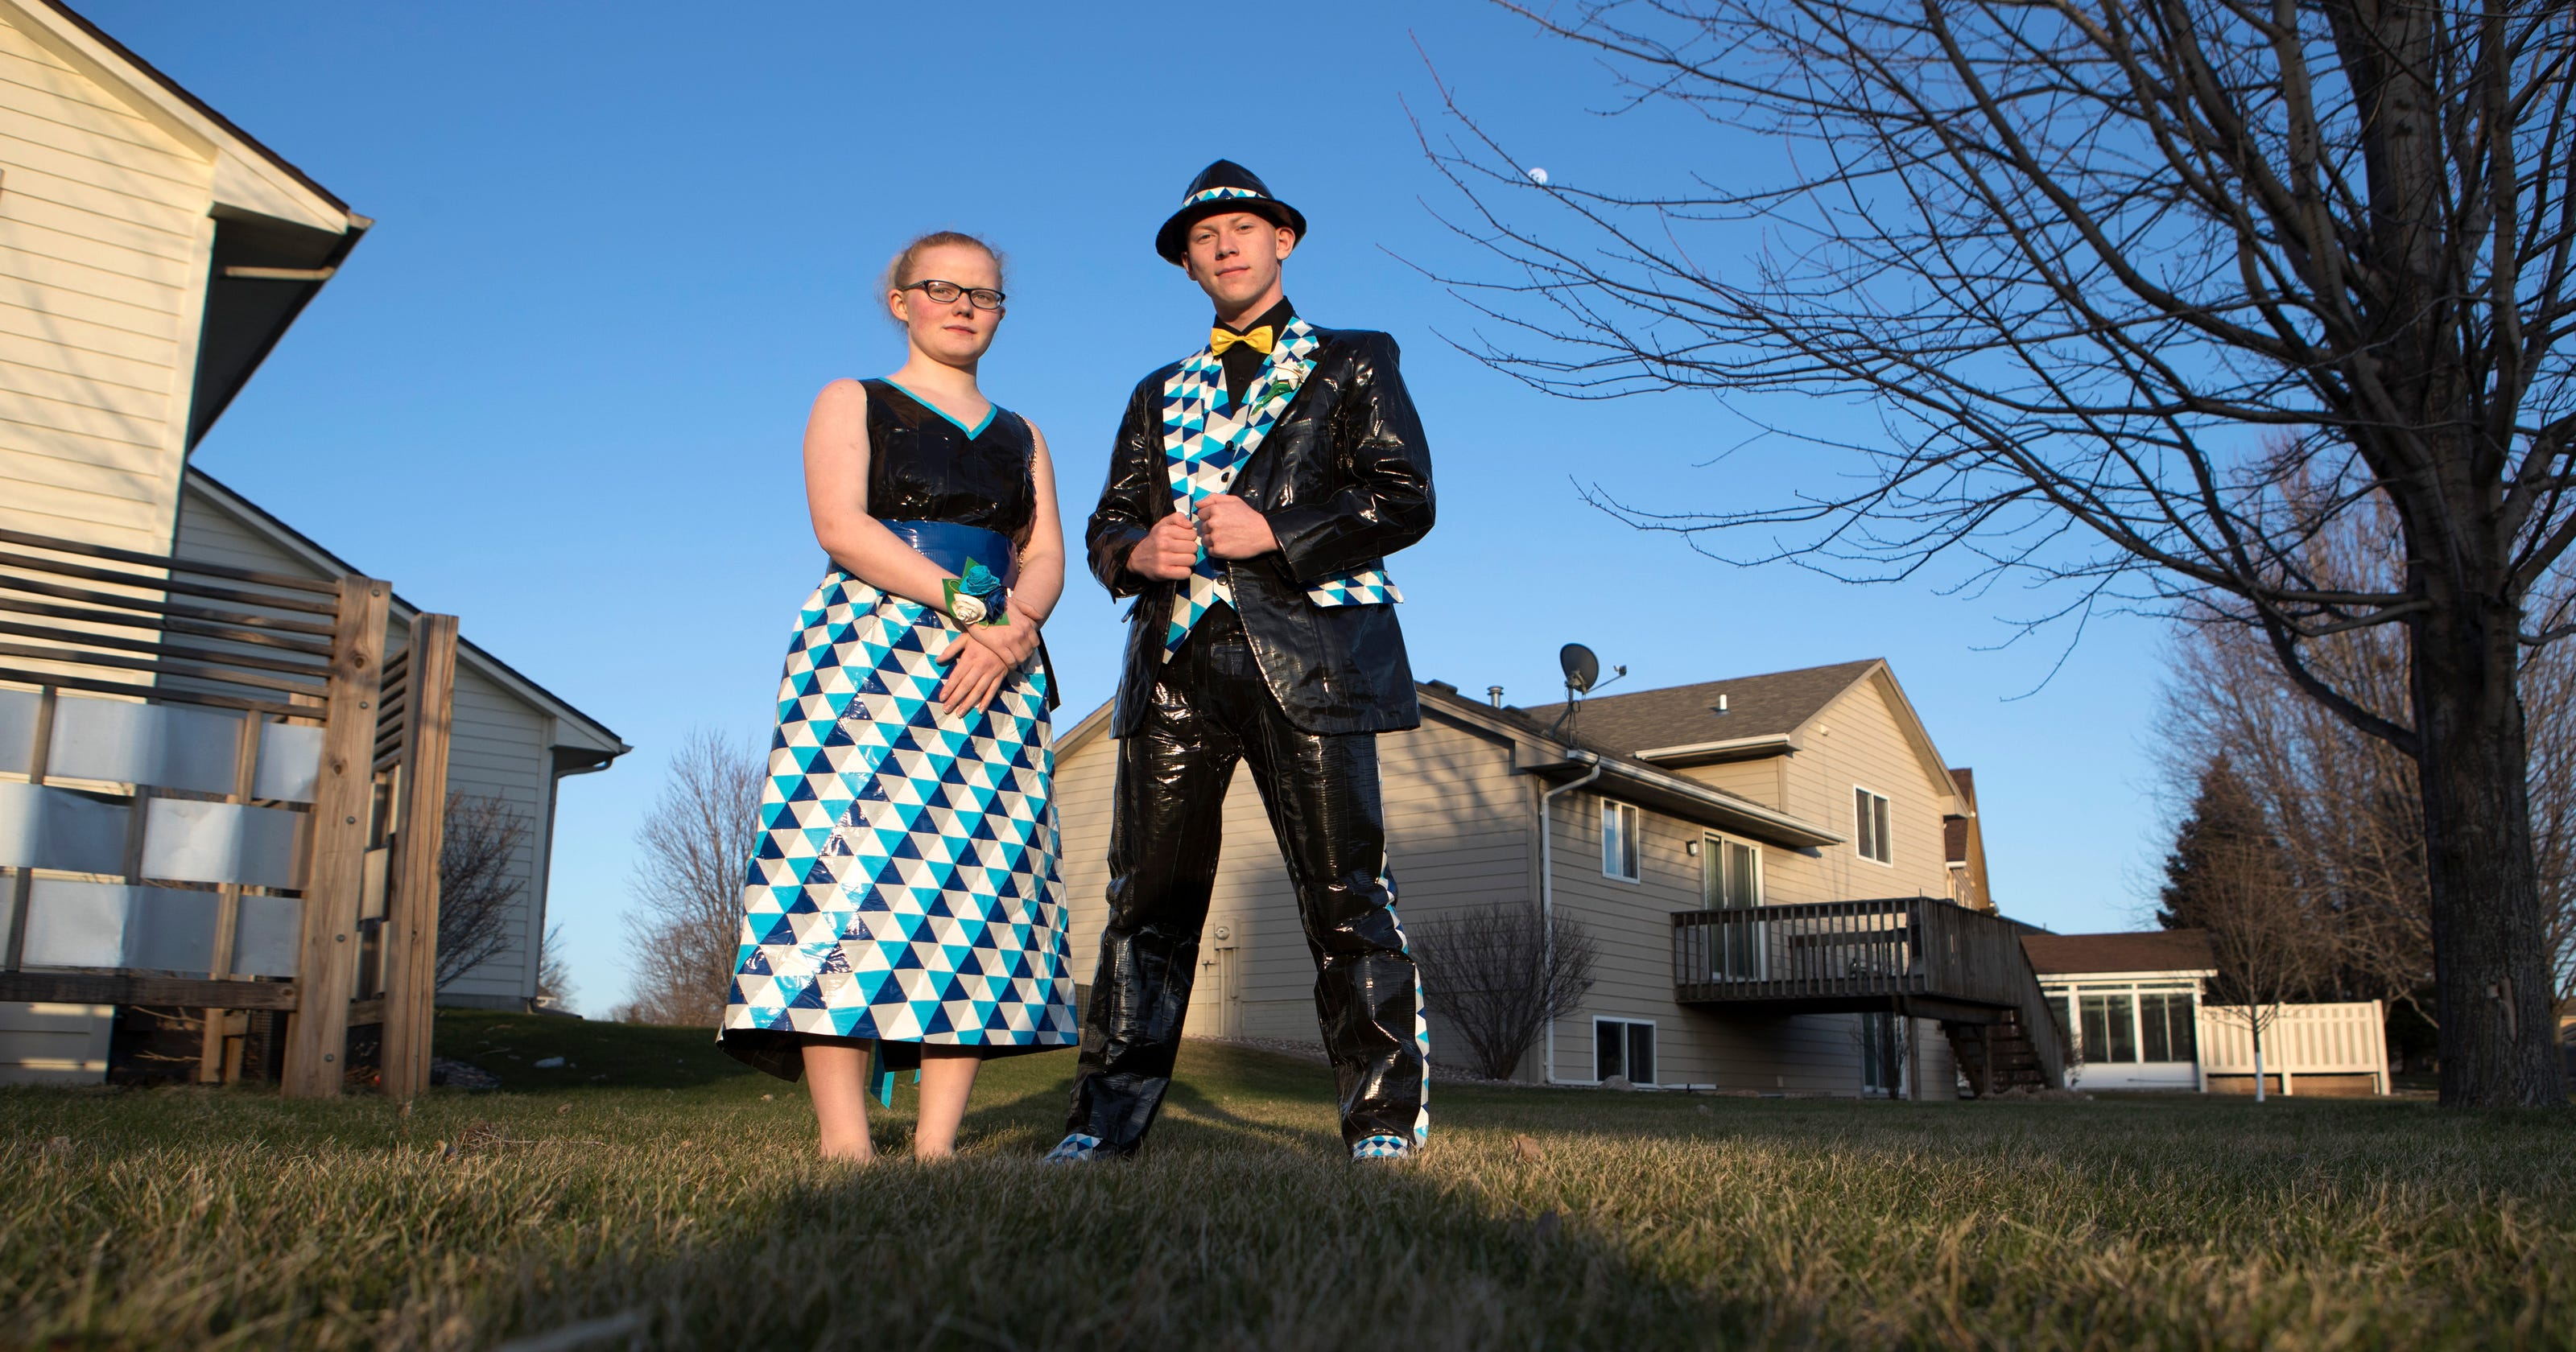 Sioux Falls student needs your vote in duct tape prom suit